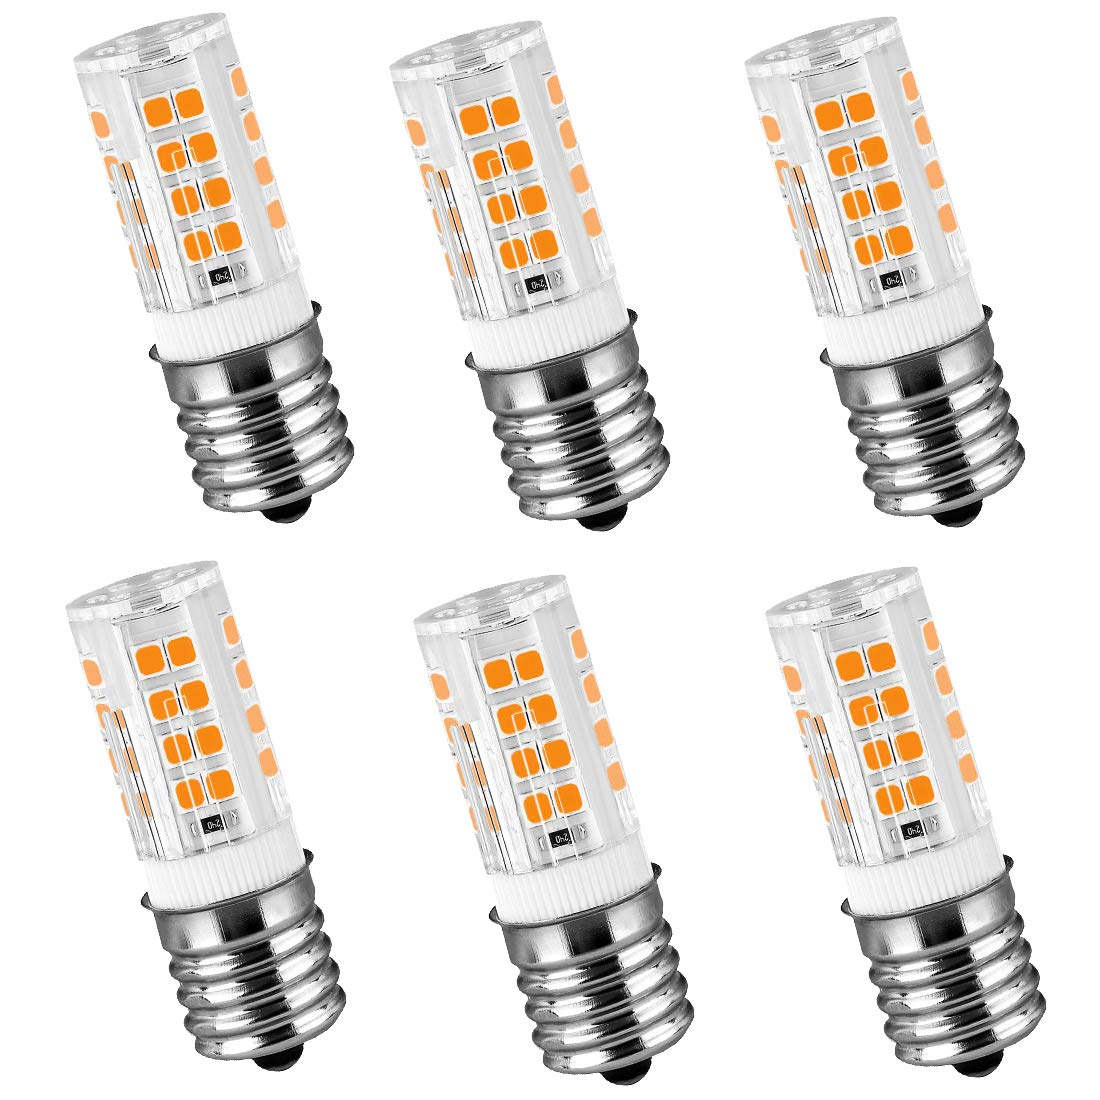 LeMeng 120V E17 LED Bulb 4W 400lm Warm White 2700k,Non-dimmable,35watt Halogen Replacement,Appliance Bulbs Microwave Oven Stovetop Light, 6-Pack